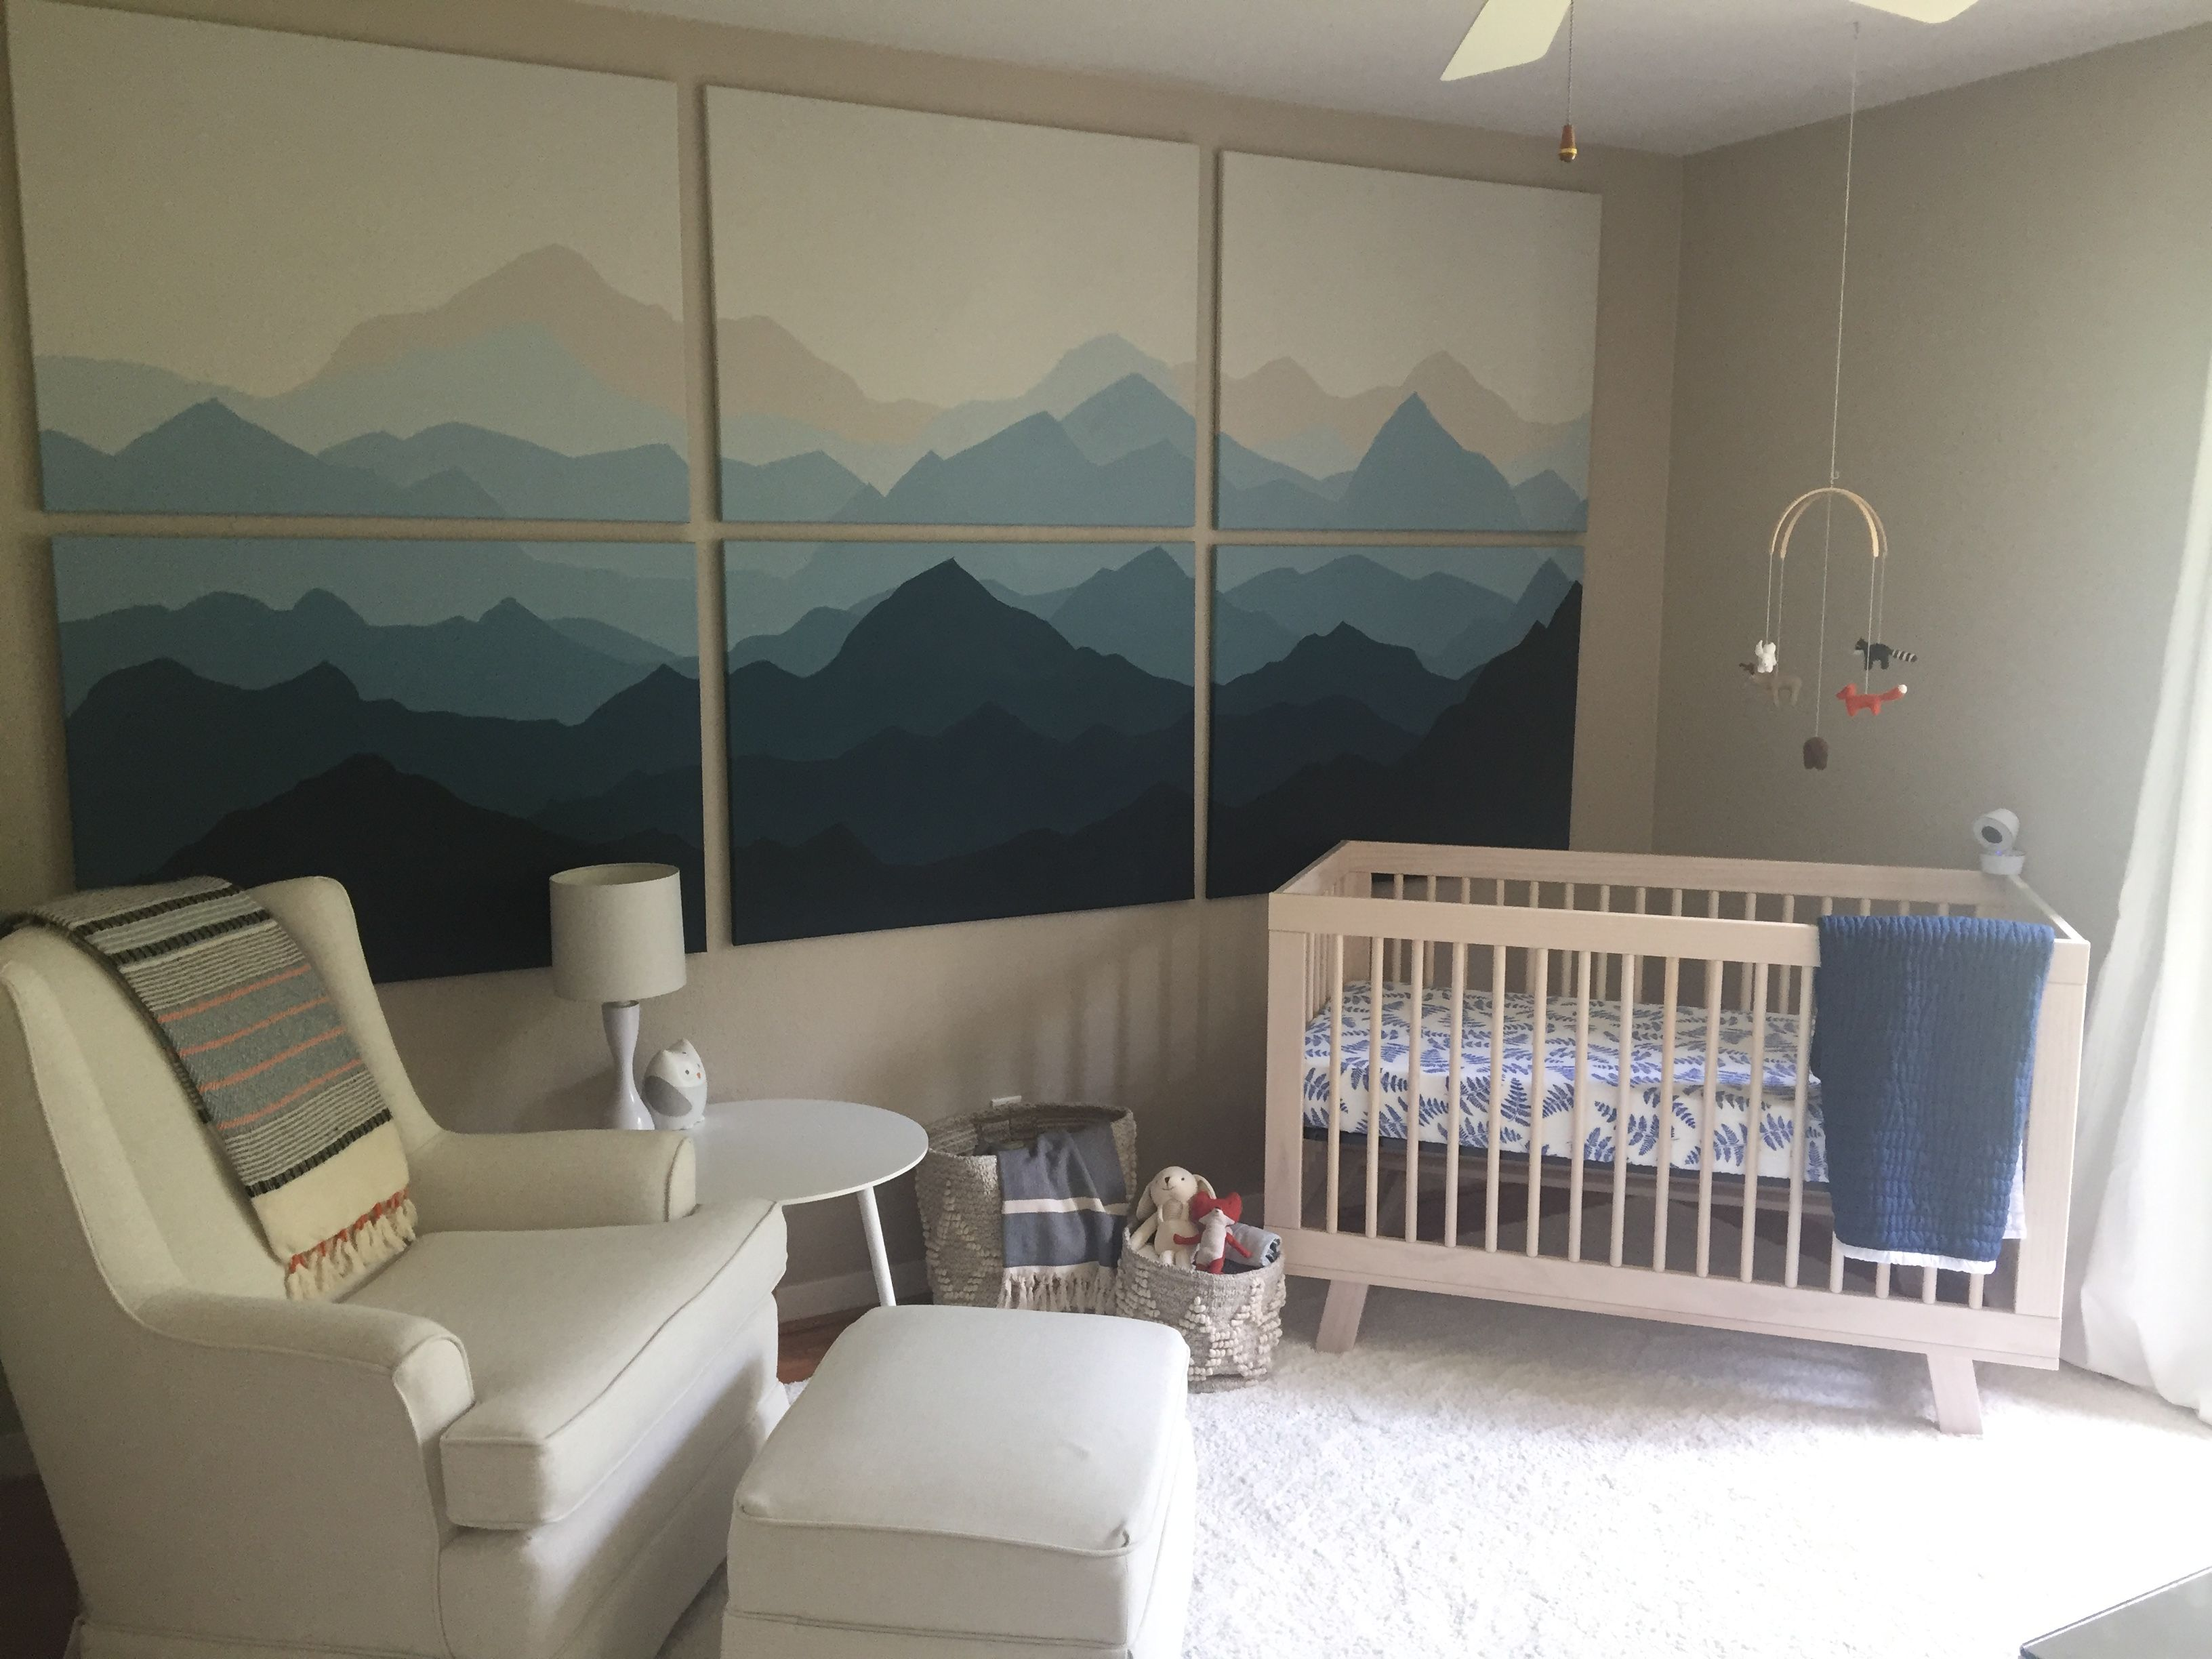 My nursery. Mountain mural on canvas. | to design | Pinterest ...